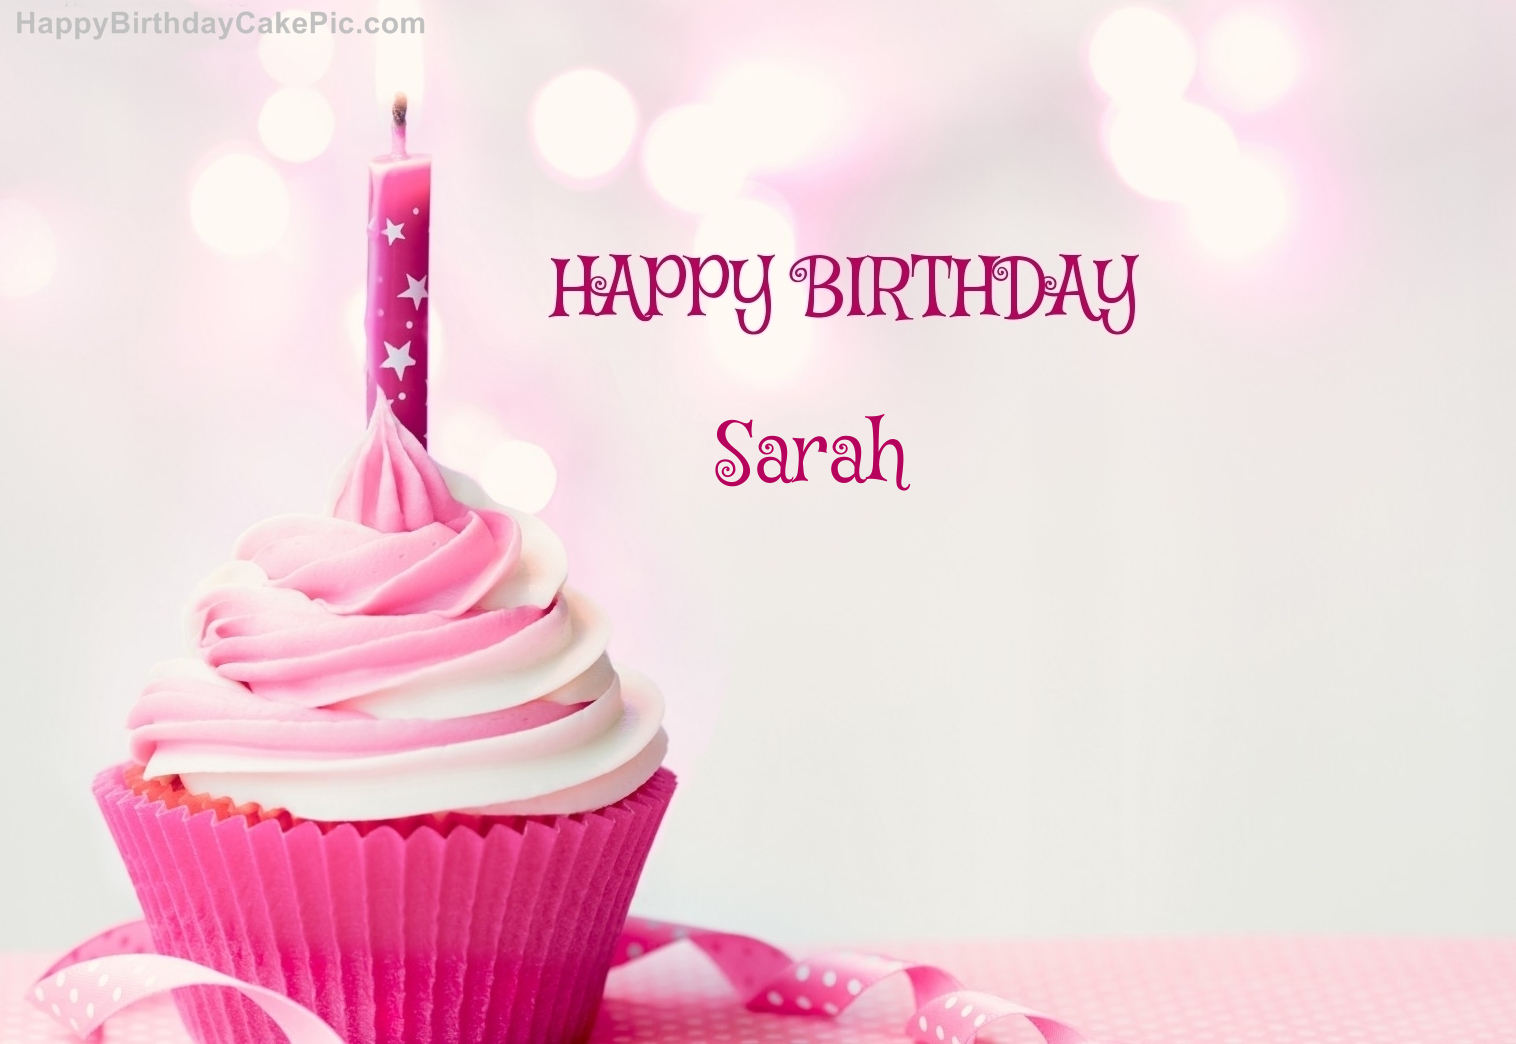 Happy Birthday Cupcake Candle Pink Cake For Sarah